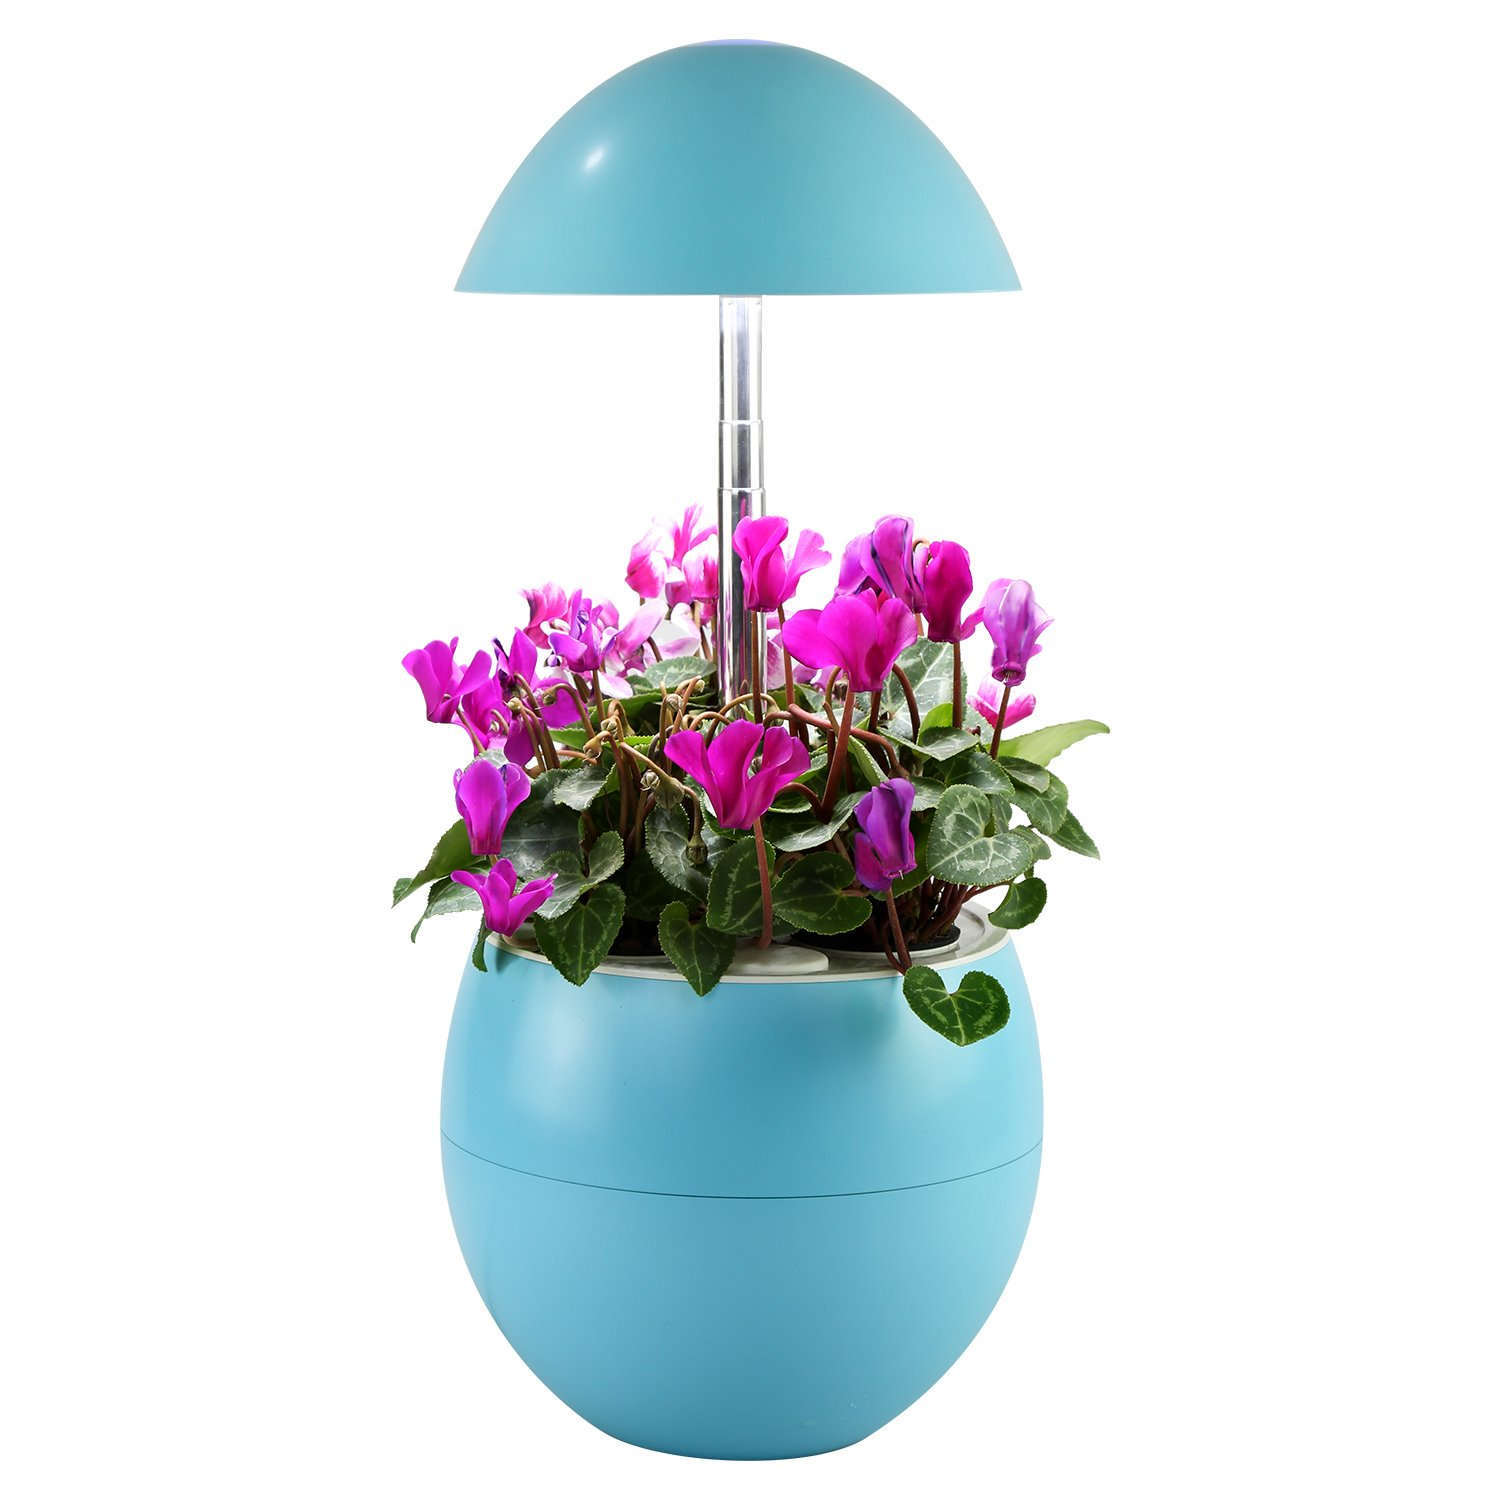 Decorative Indoor Garden Lamp Hydroponic Self Watering System, Complete Planter Pod Kit, Seeds & Led Light Grows Herbs, Flowers, Succulents in Kitchen or Any Room by Domestic Diva LA (Blue) by Domestic Diva LA